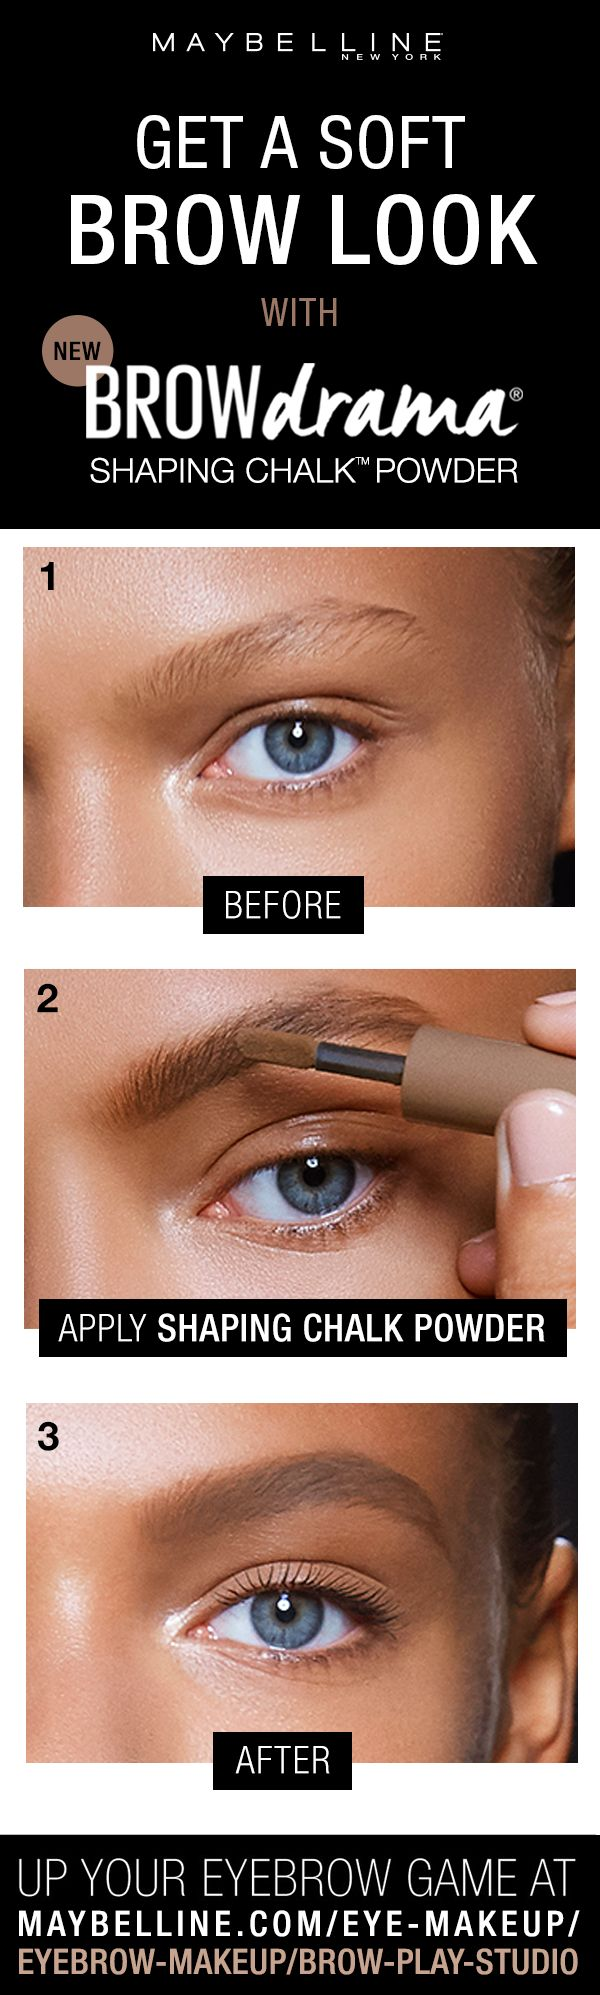 Up your eyebrow game with the NEW Brow Drama Shaping Chalk Powder. The loose powder formula fills in smooth color, while the thick-to-thin brush applicator creates instant definition. Flawlessly shaped brows are made easy. Click through to find your perfect brow product!